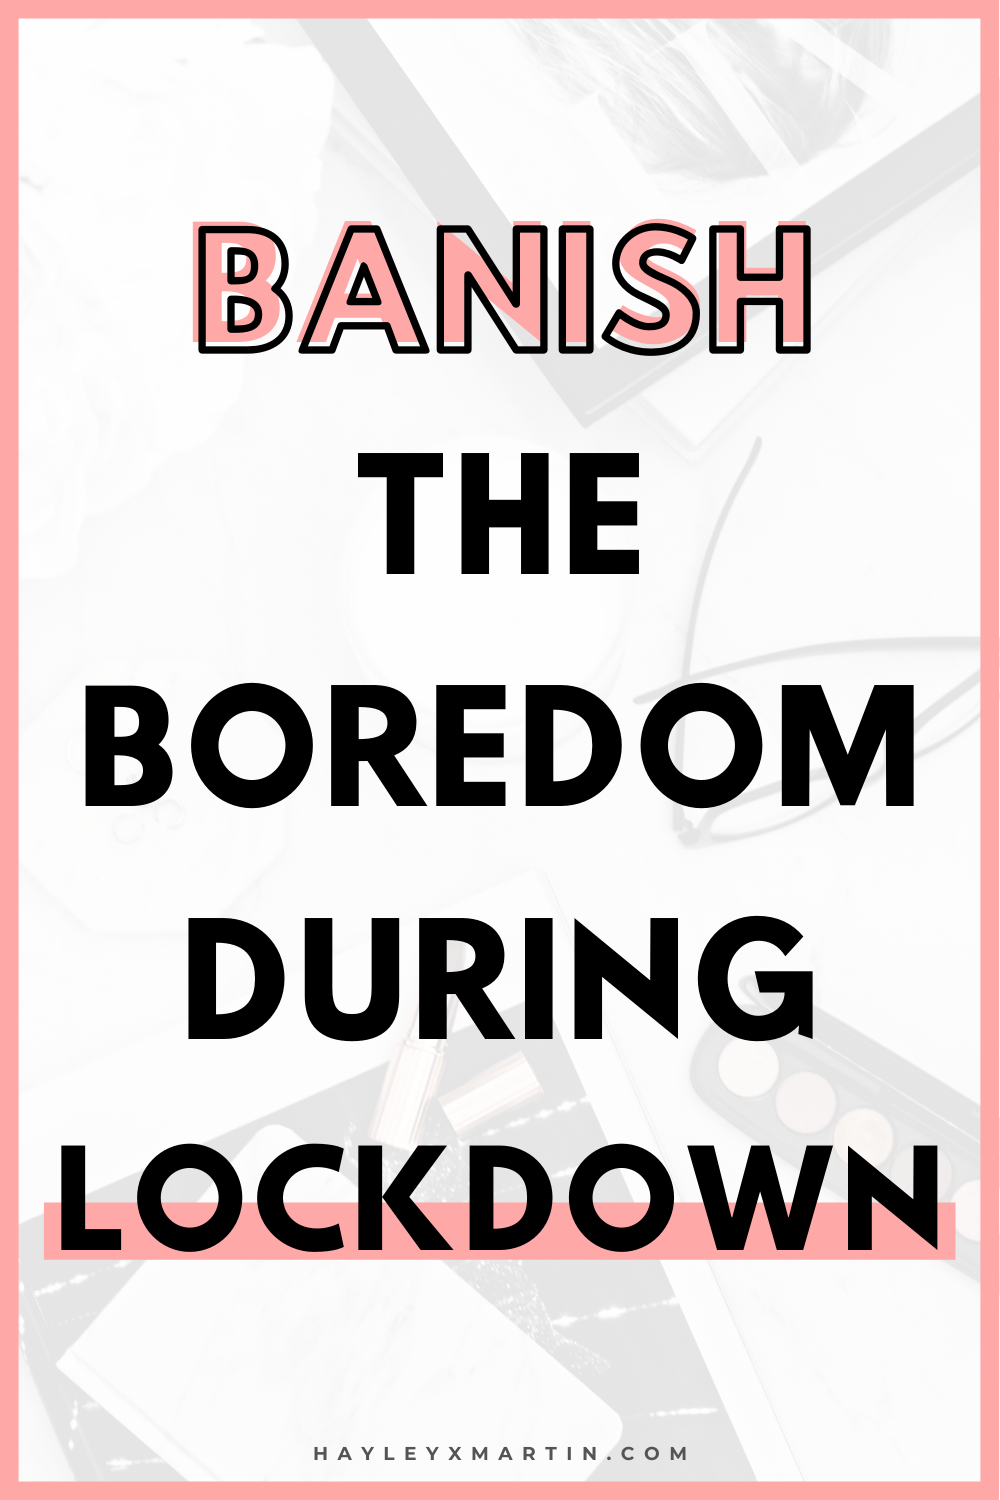 BANISH THE BOREDOM DURING LOCKDOWN | HAYLEYXMARTIN